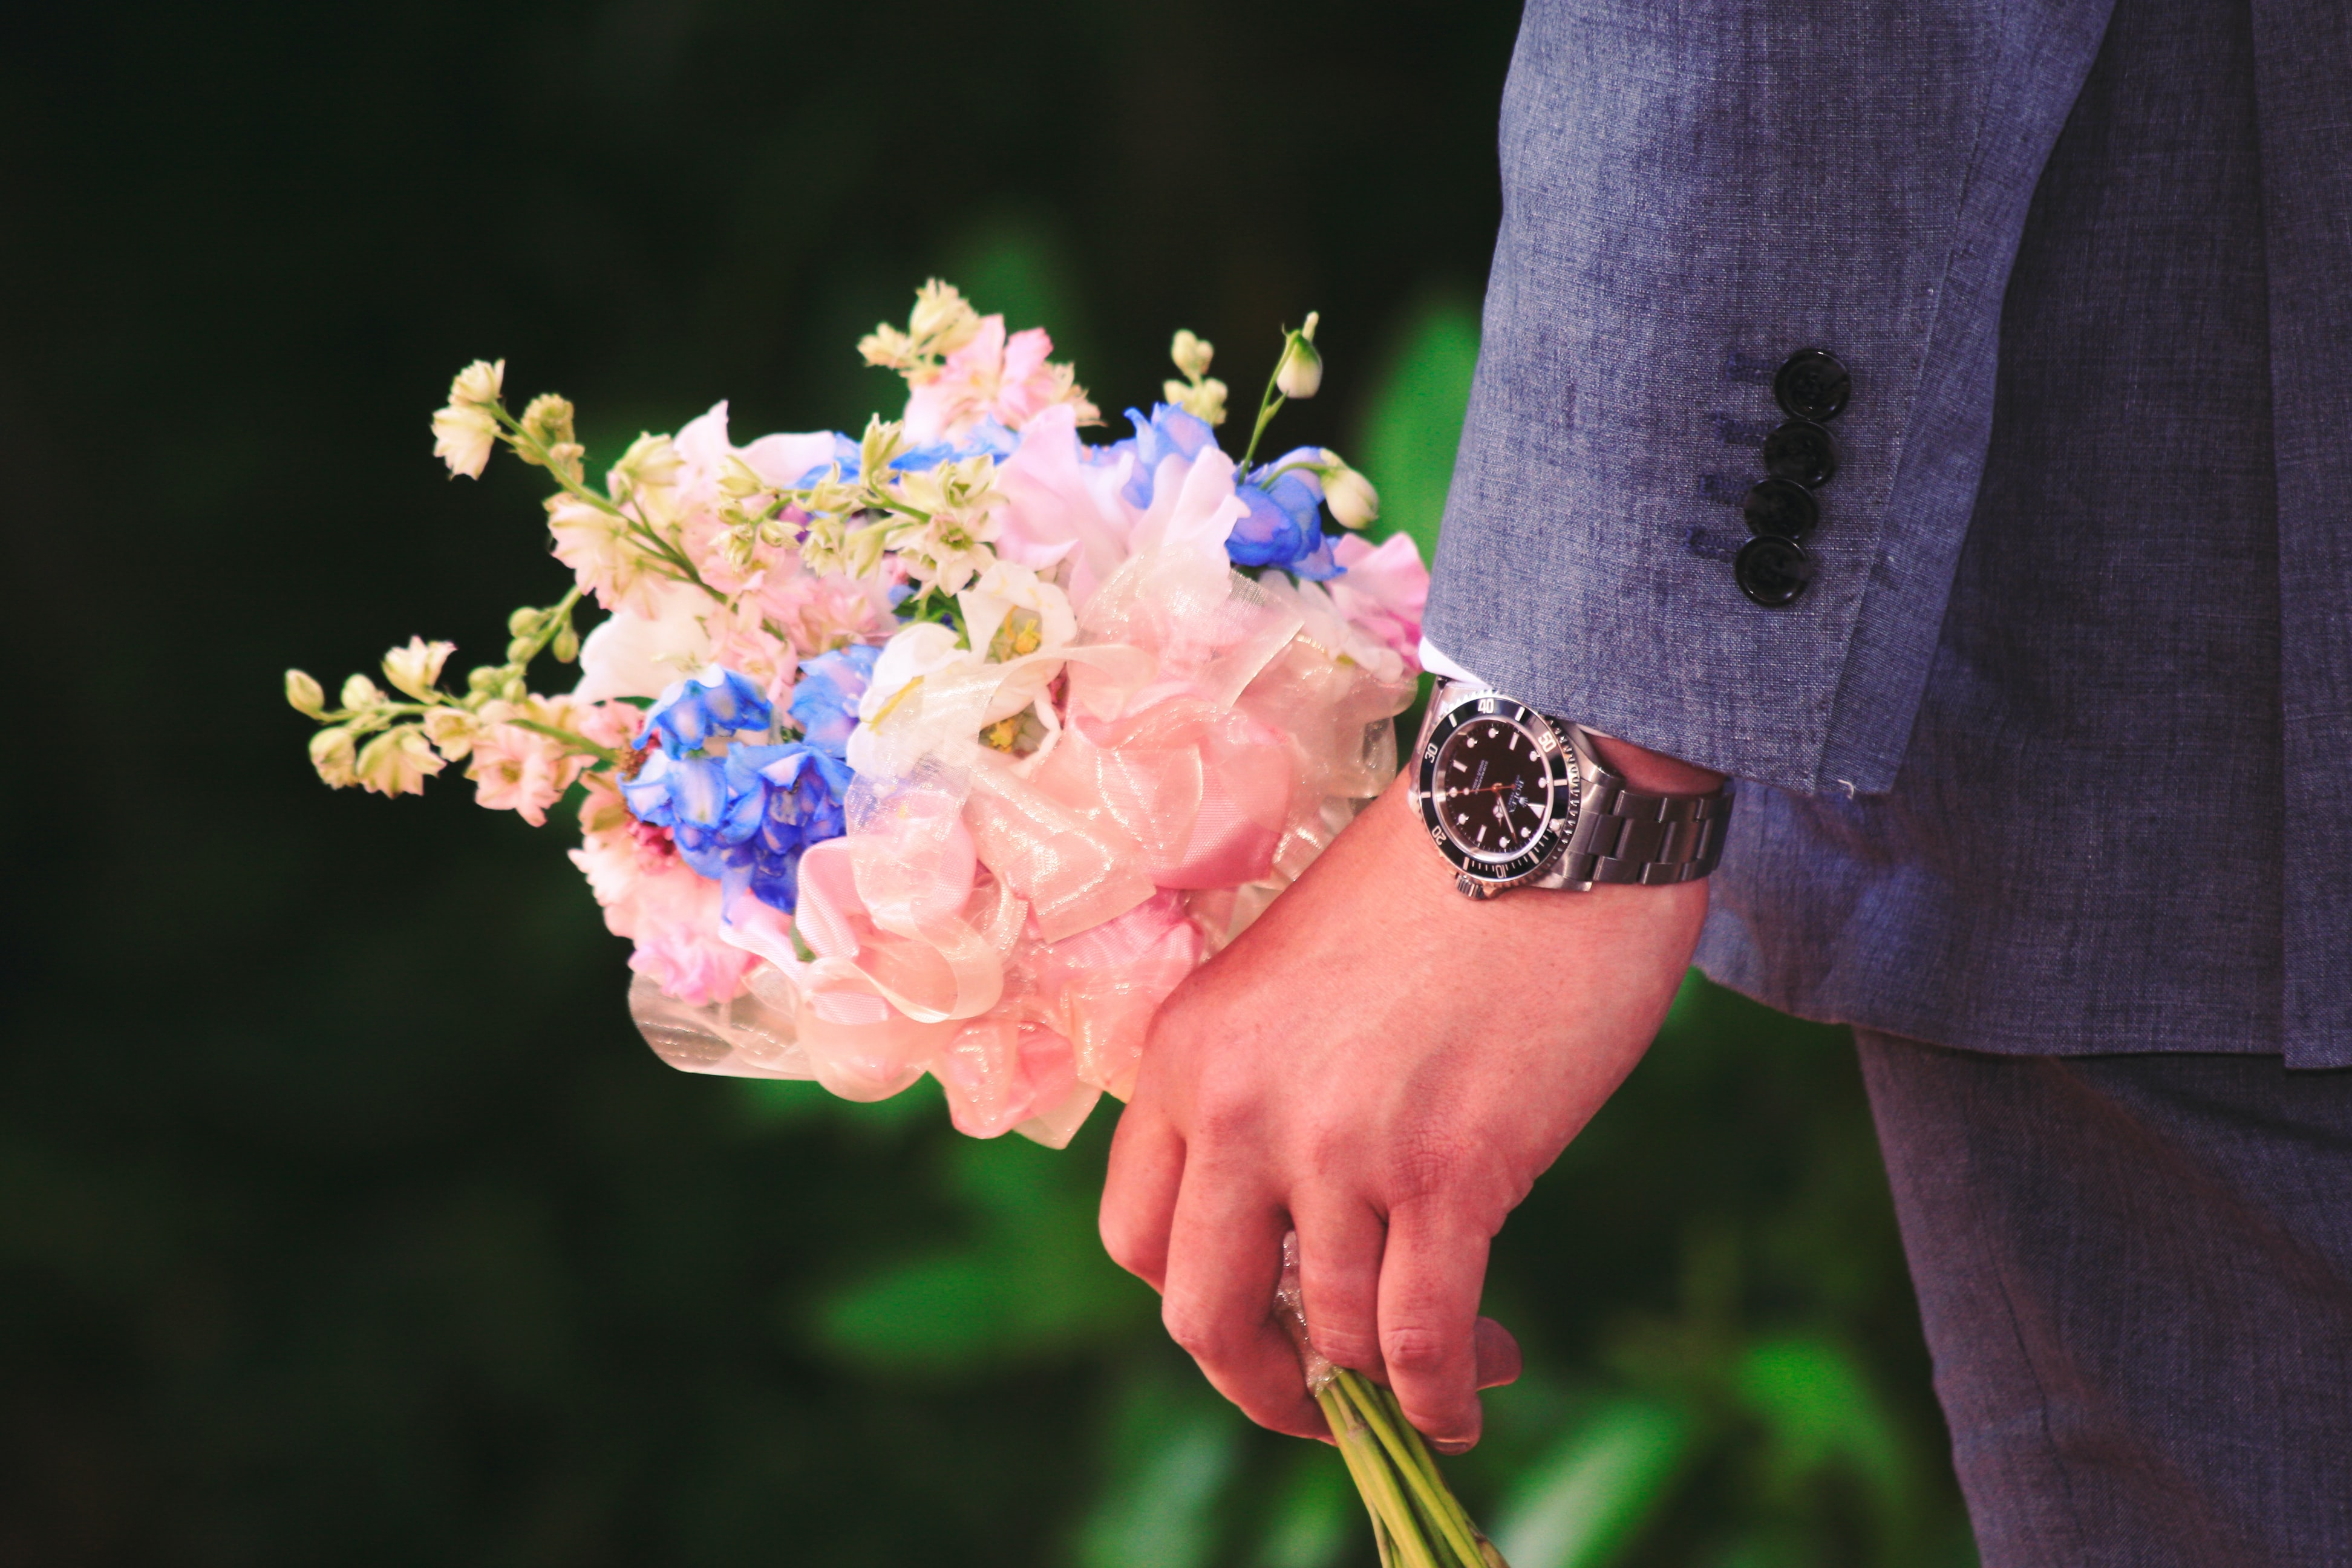 Man in tuxedo grips bouquet of pink, purple and white flowers